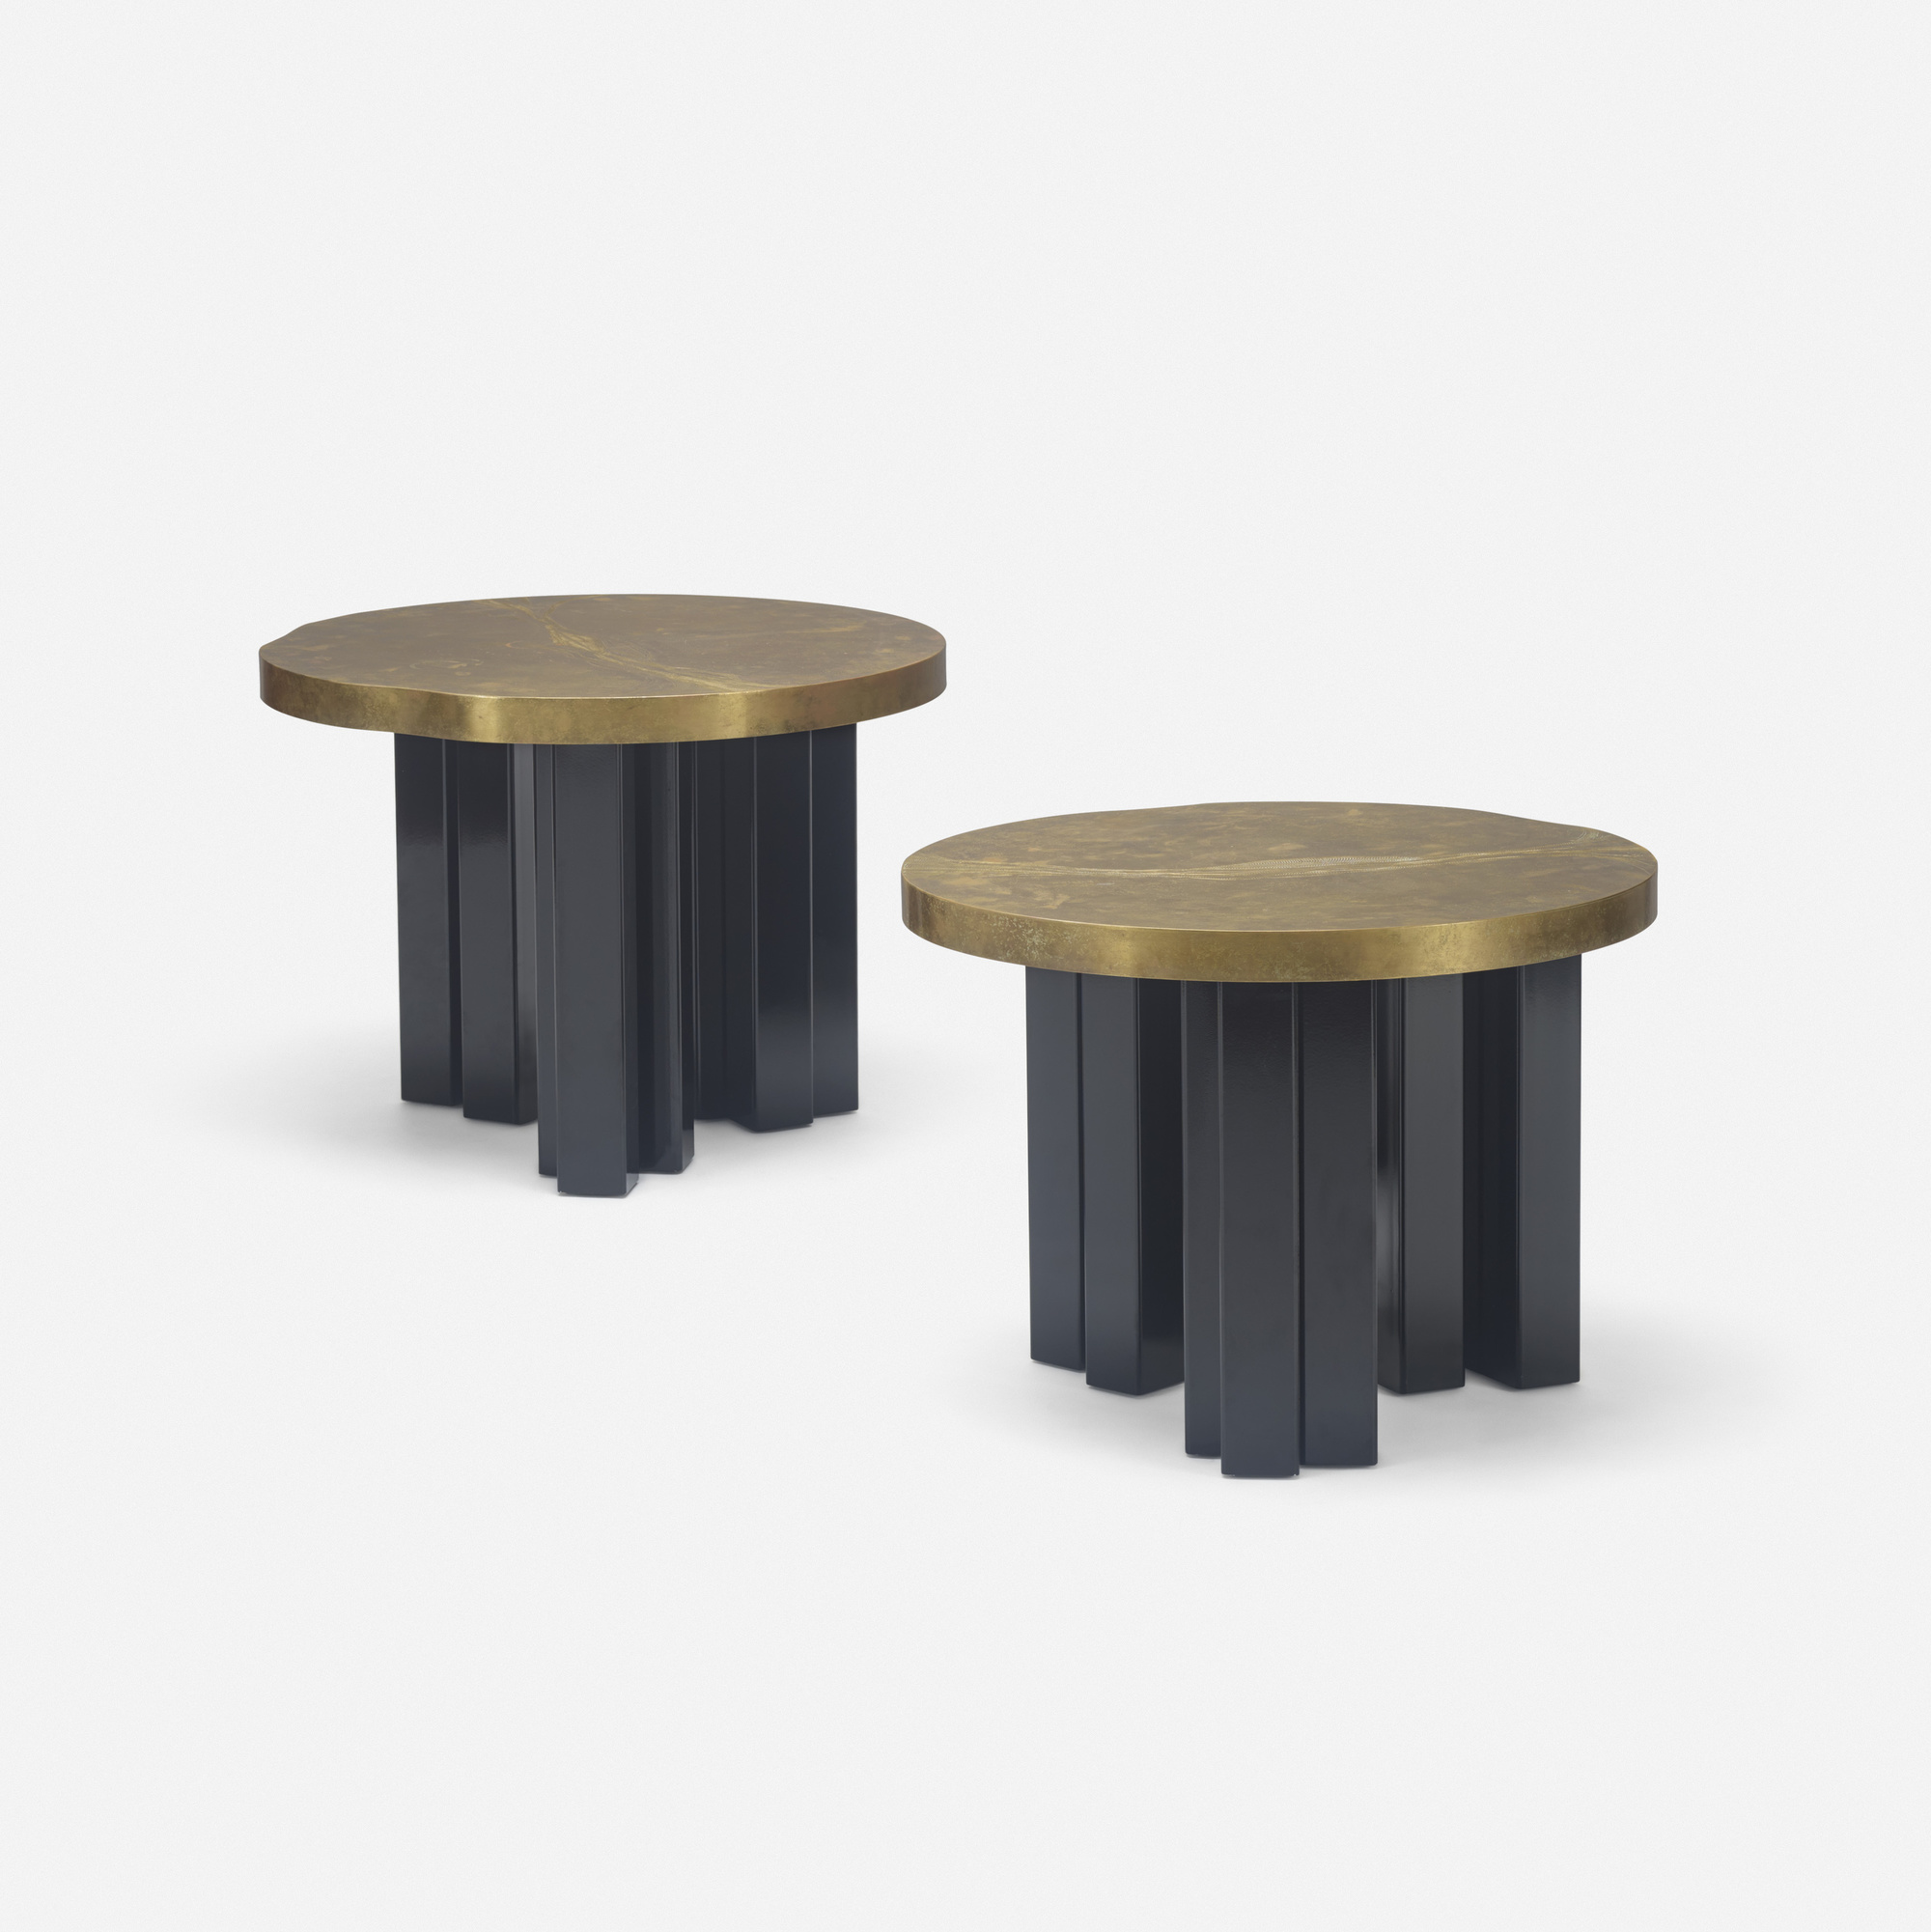 368: Christian Krekels / occasional table, pair (1 of 2)